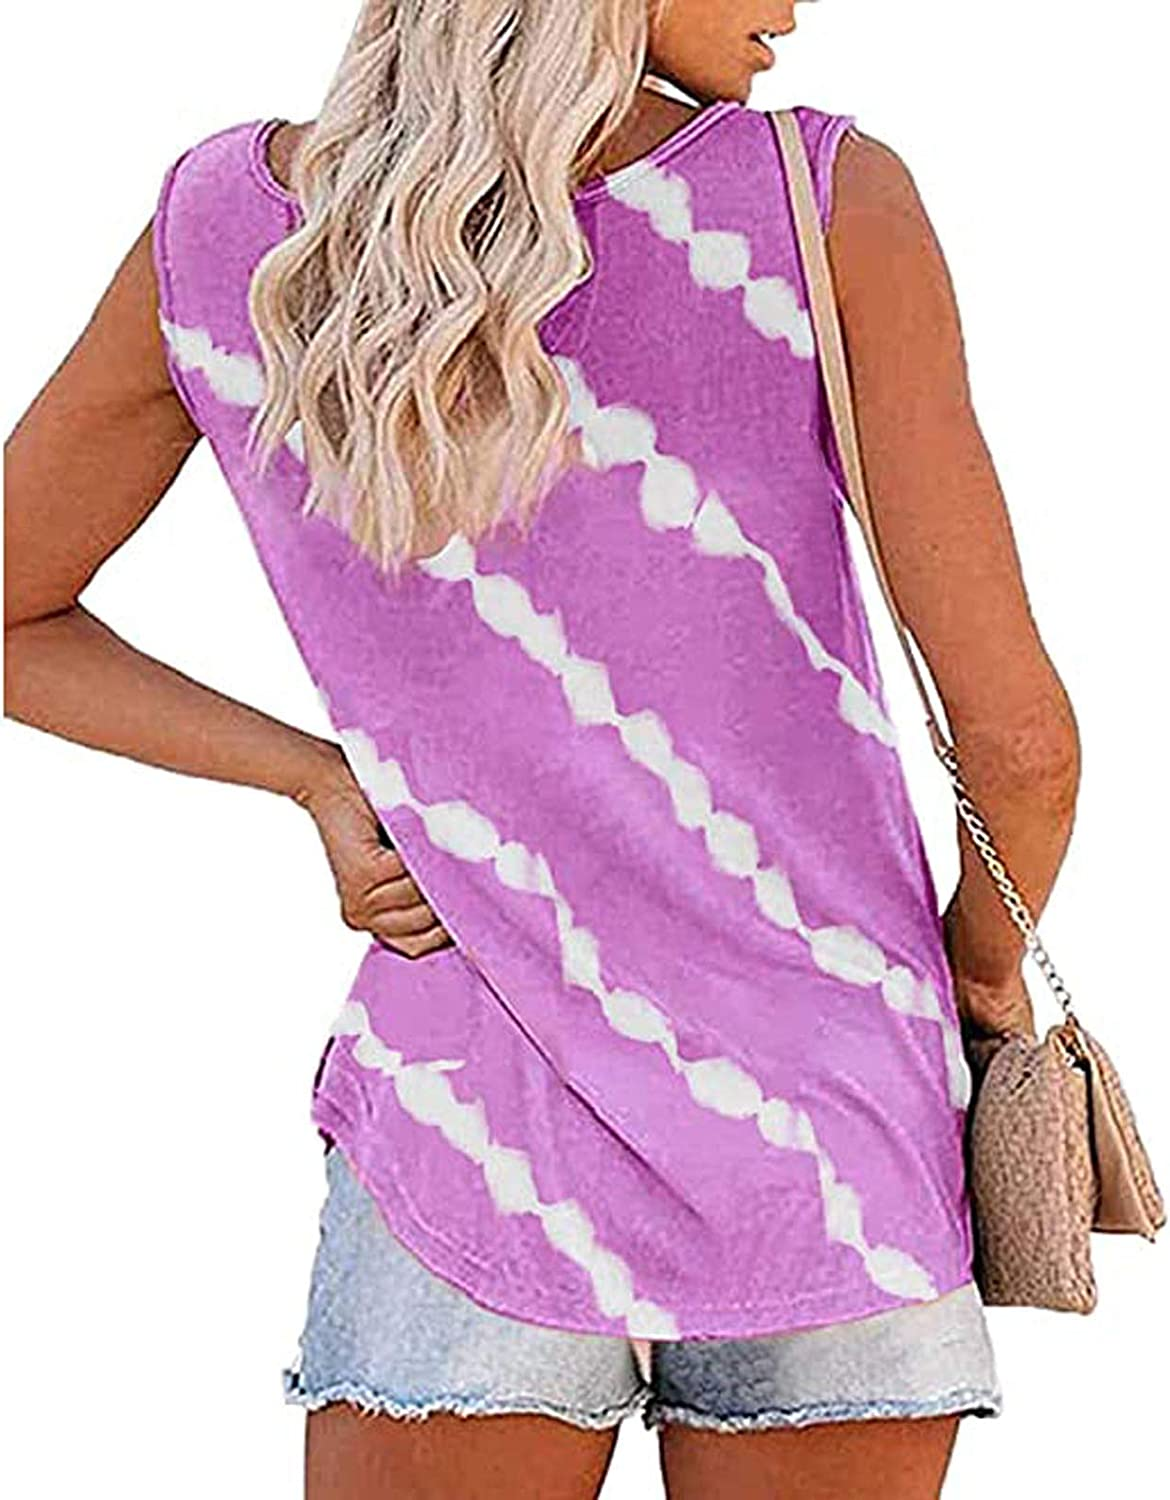 NIANTIE Tank Tops for Women Casual, Womens Stripes Printed Tank Tops Sleeveless O-Neck Henley Shirt Summer Casual Workout Tee